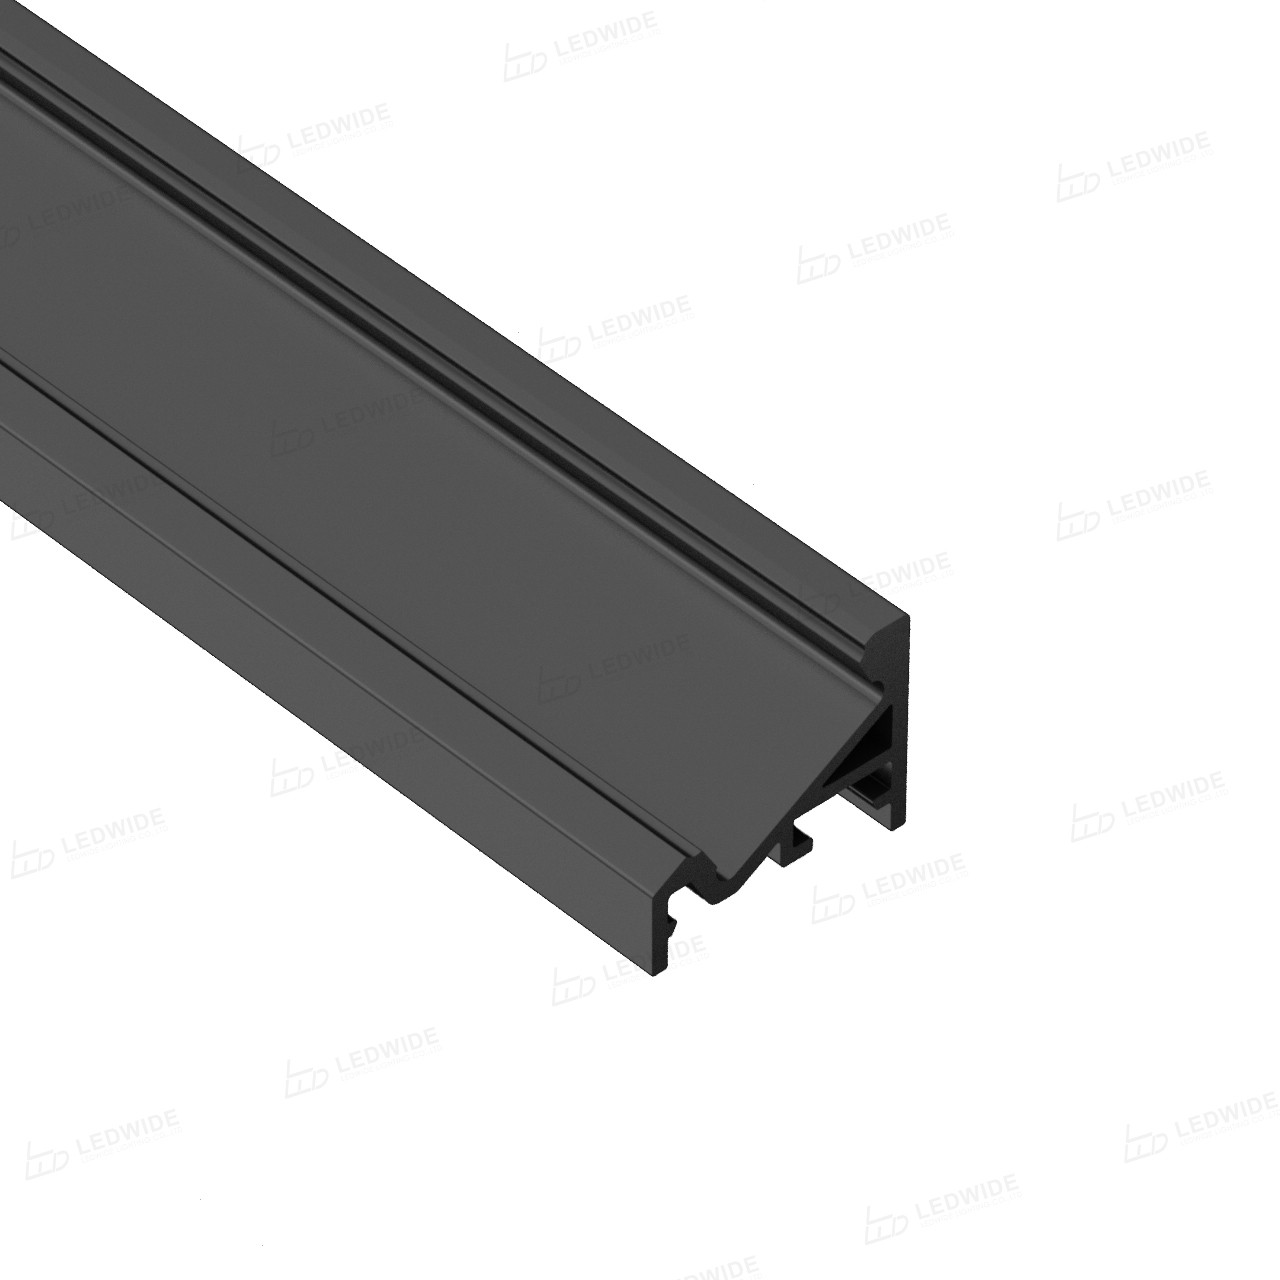 AV2 Corner 30°/60°aluminum surface mounting profile 20x16mm Manufacturers, AV2 Corner 30°/60°aluminum surface mounting profile 20x16mm Factory, Supply AV2 Corner 30°/60°aluminum surface mounting profile 20x16mm